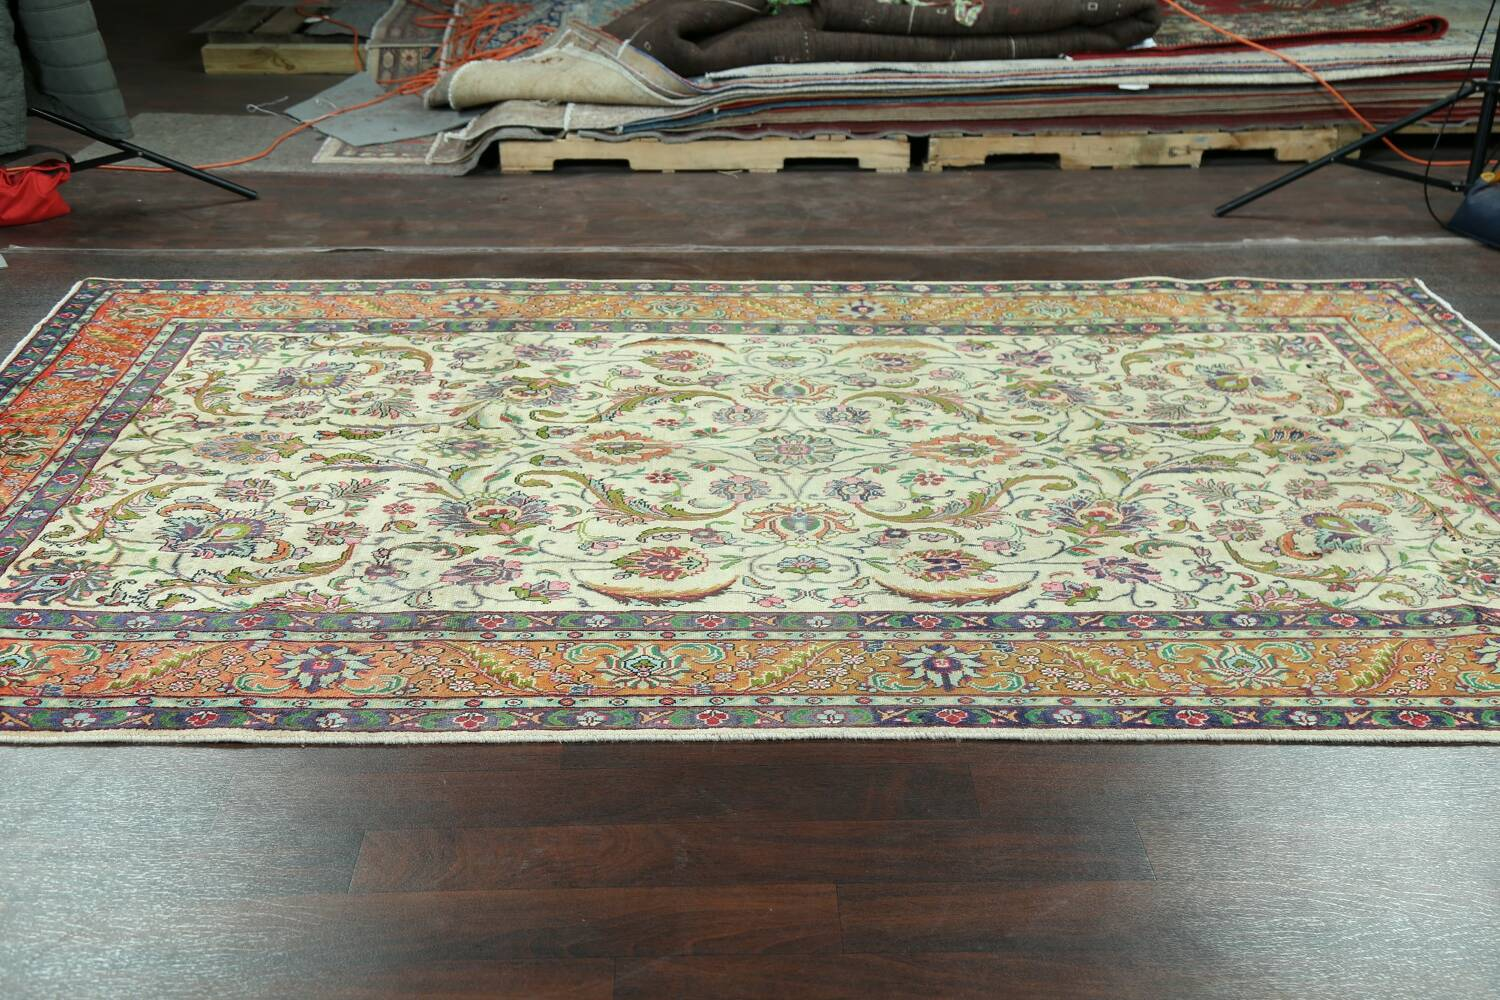 Antique All-Over Floral Tabriz Persian Area Rug 7x11 image 14